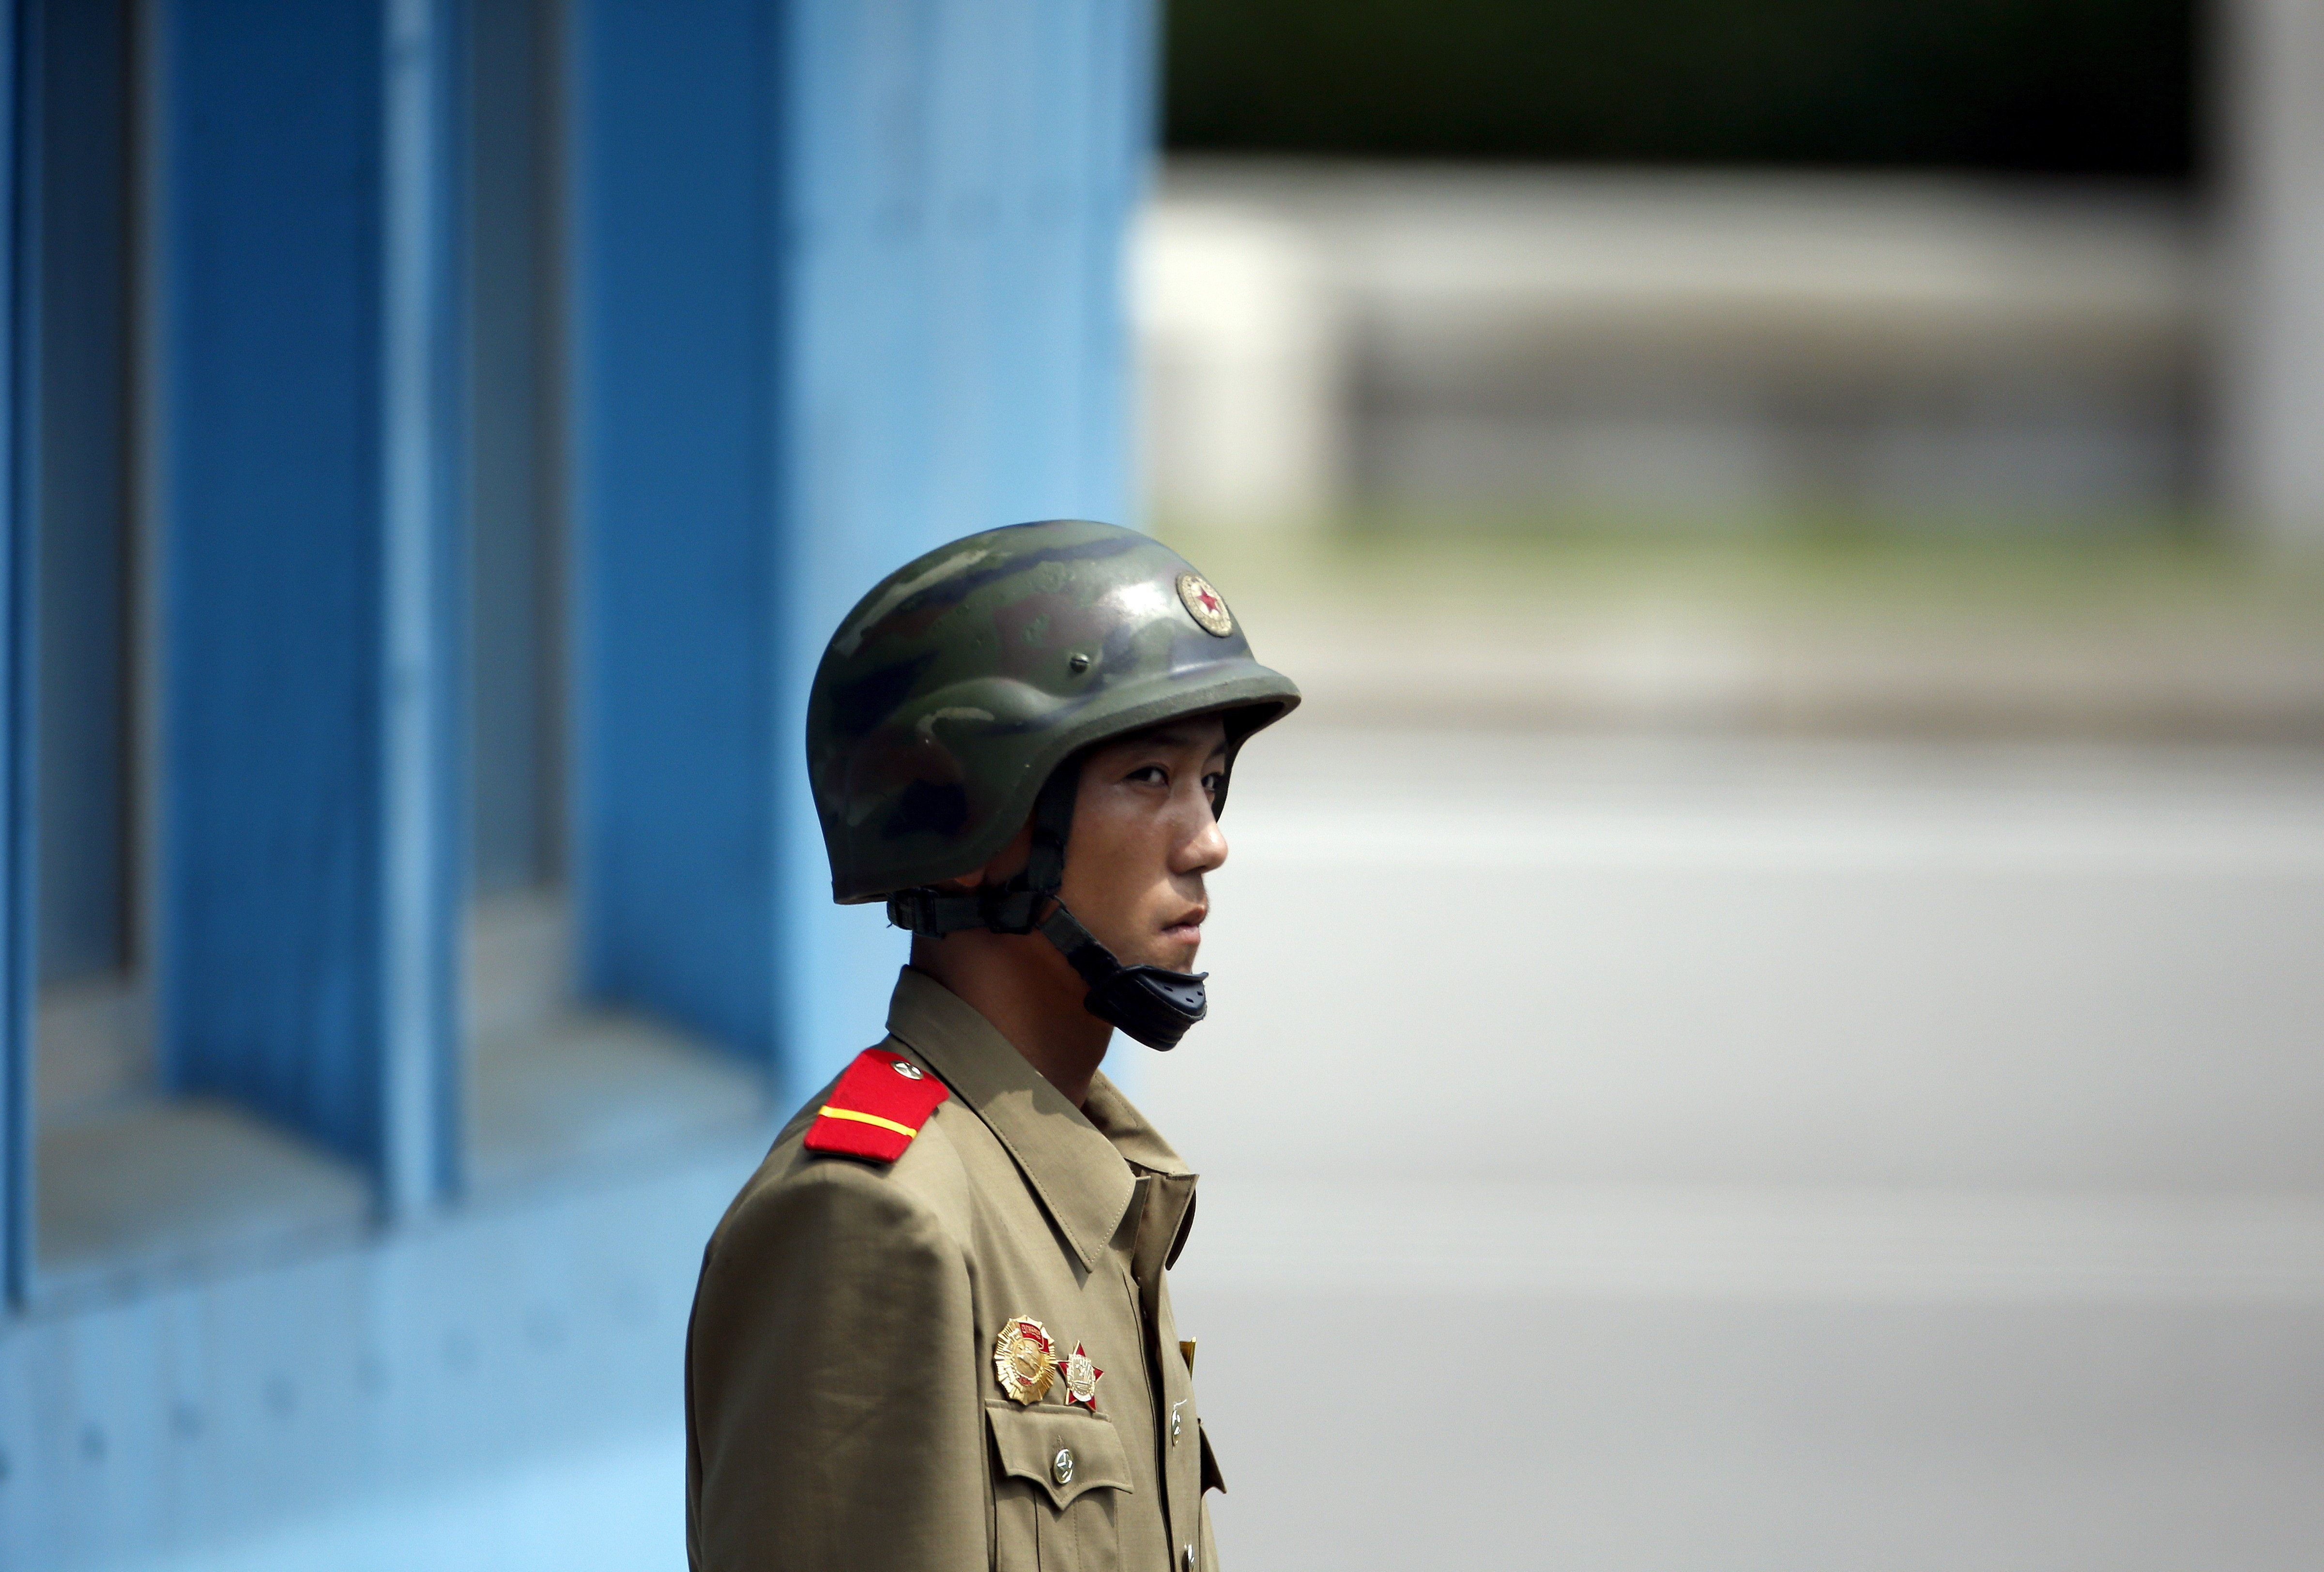 A North Korean soldier keeps watch on the south at the truce village of Panmunjom in the demilitarized zone (DMZ) separating